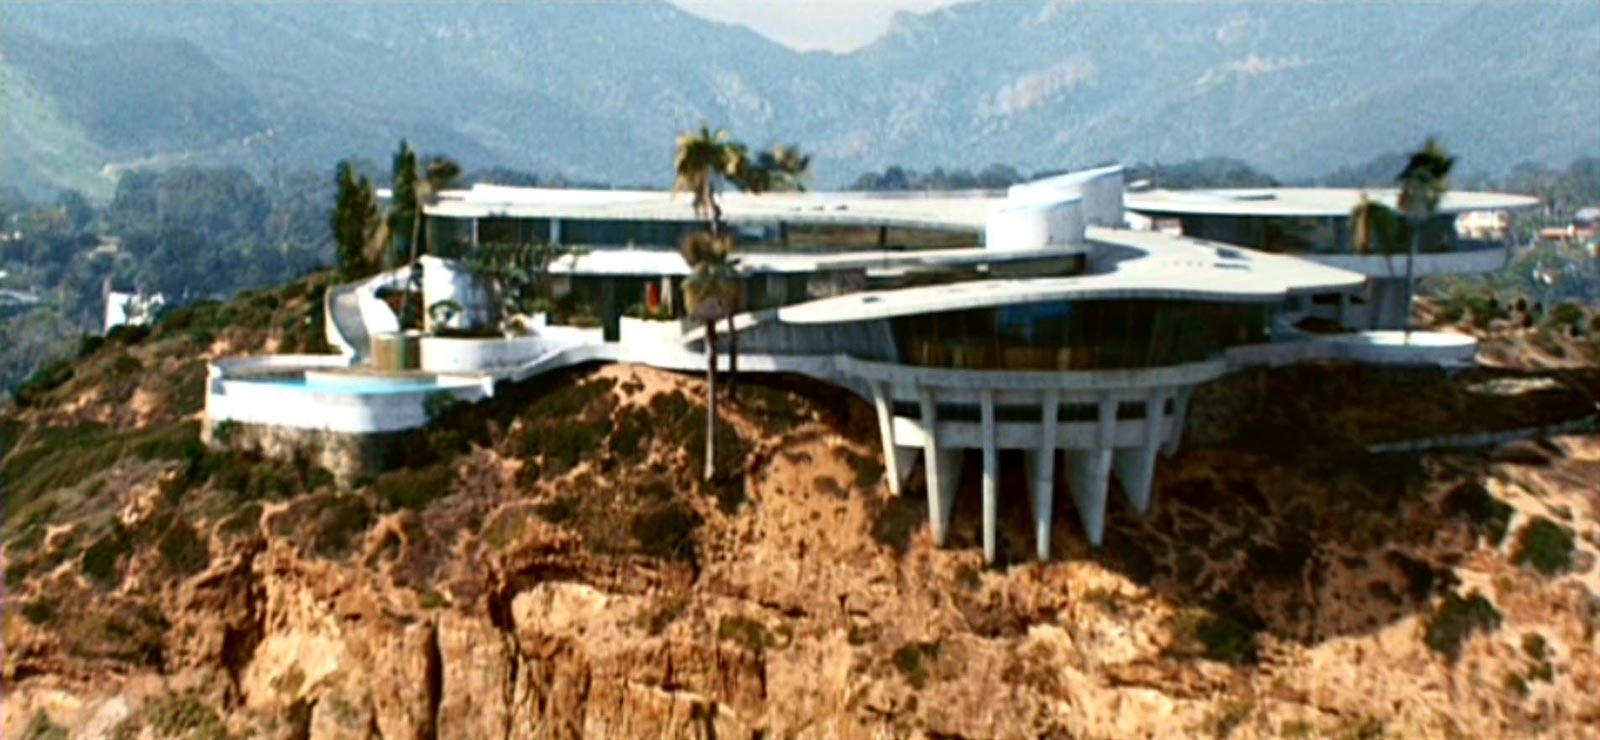 Amazing The 10 Coolest Fictional Residences In Movie History Vh1 Largest Home Design Picture Inspirations Pitcheantrous